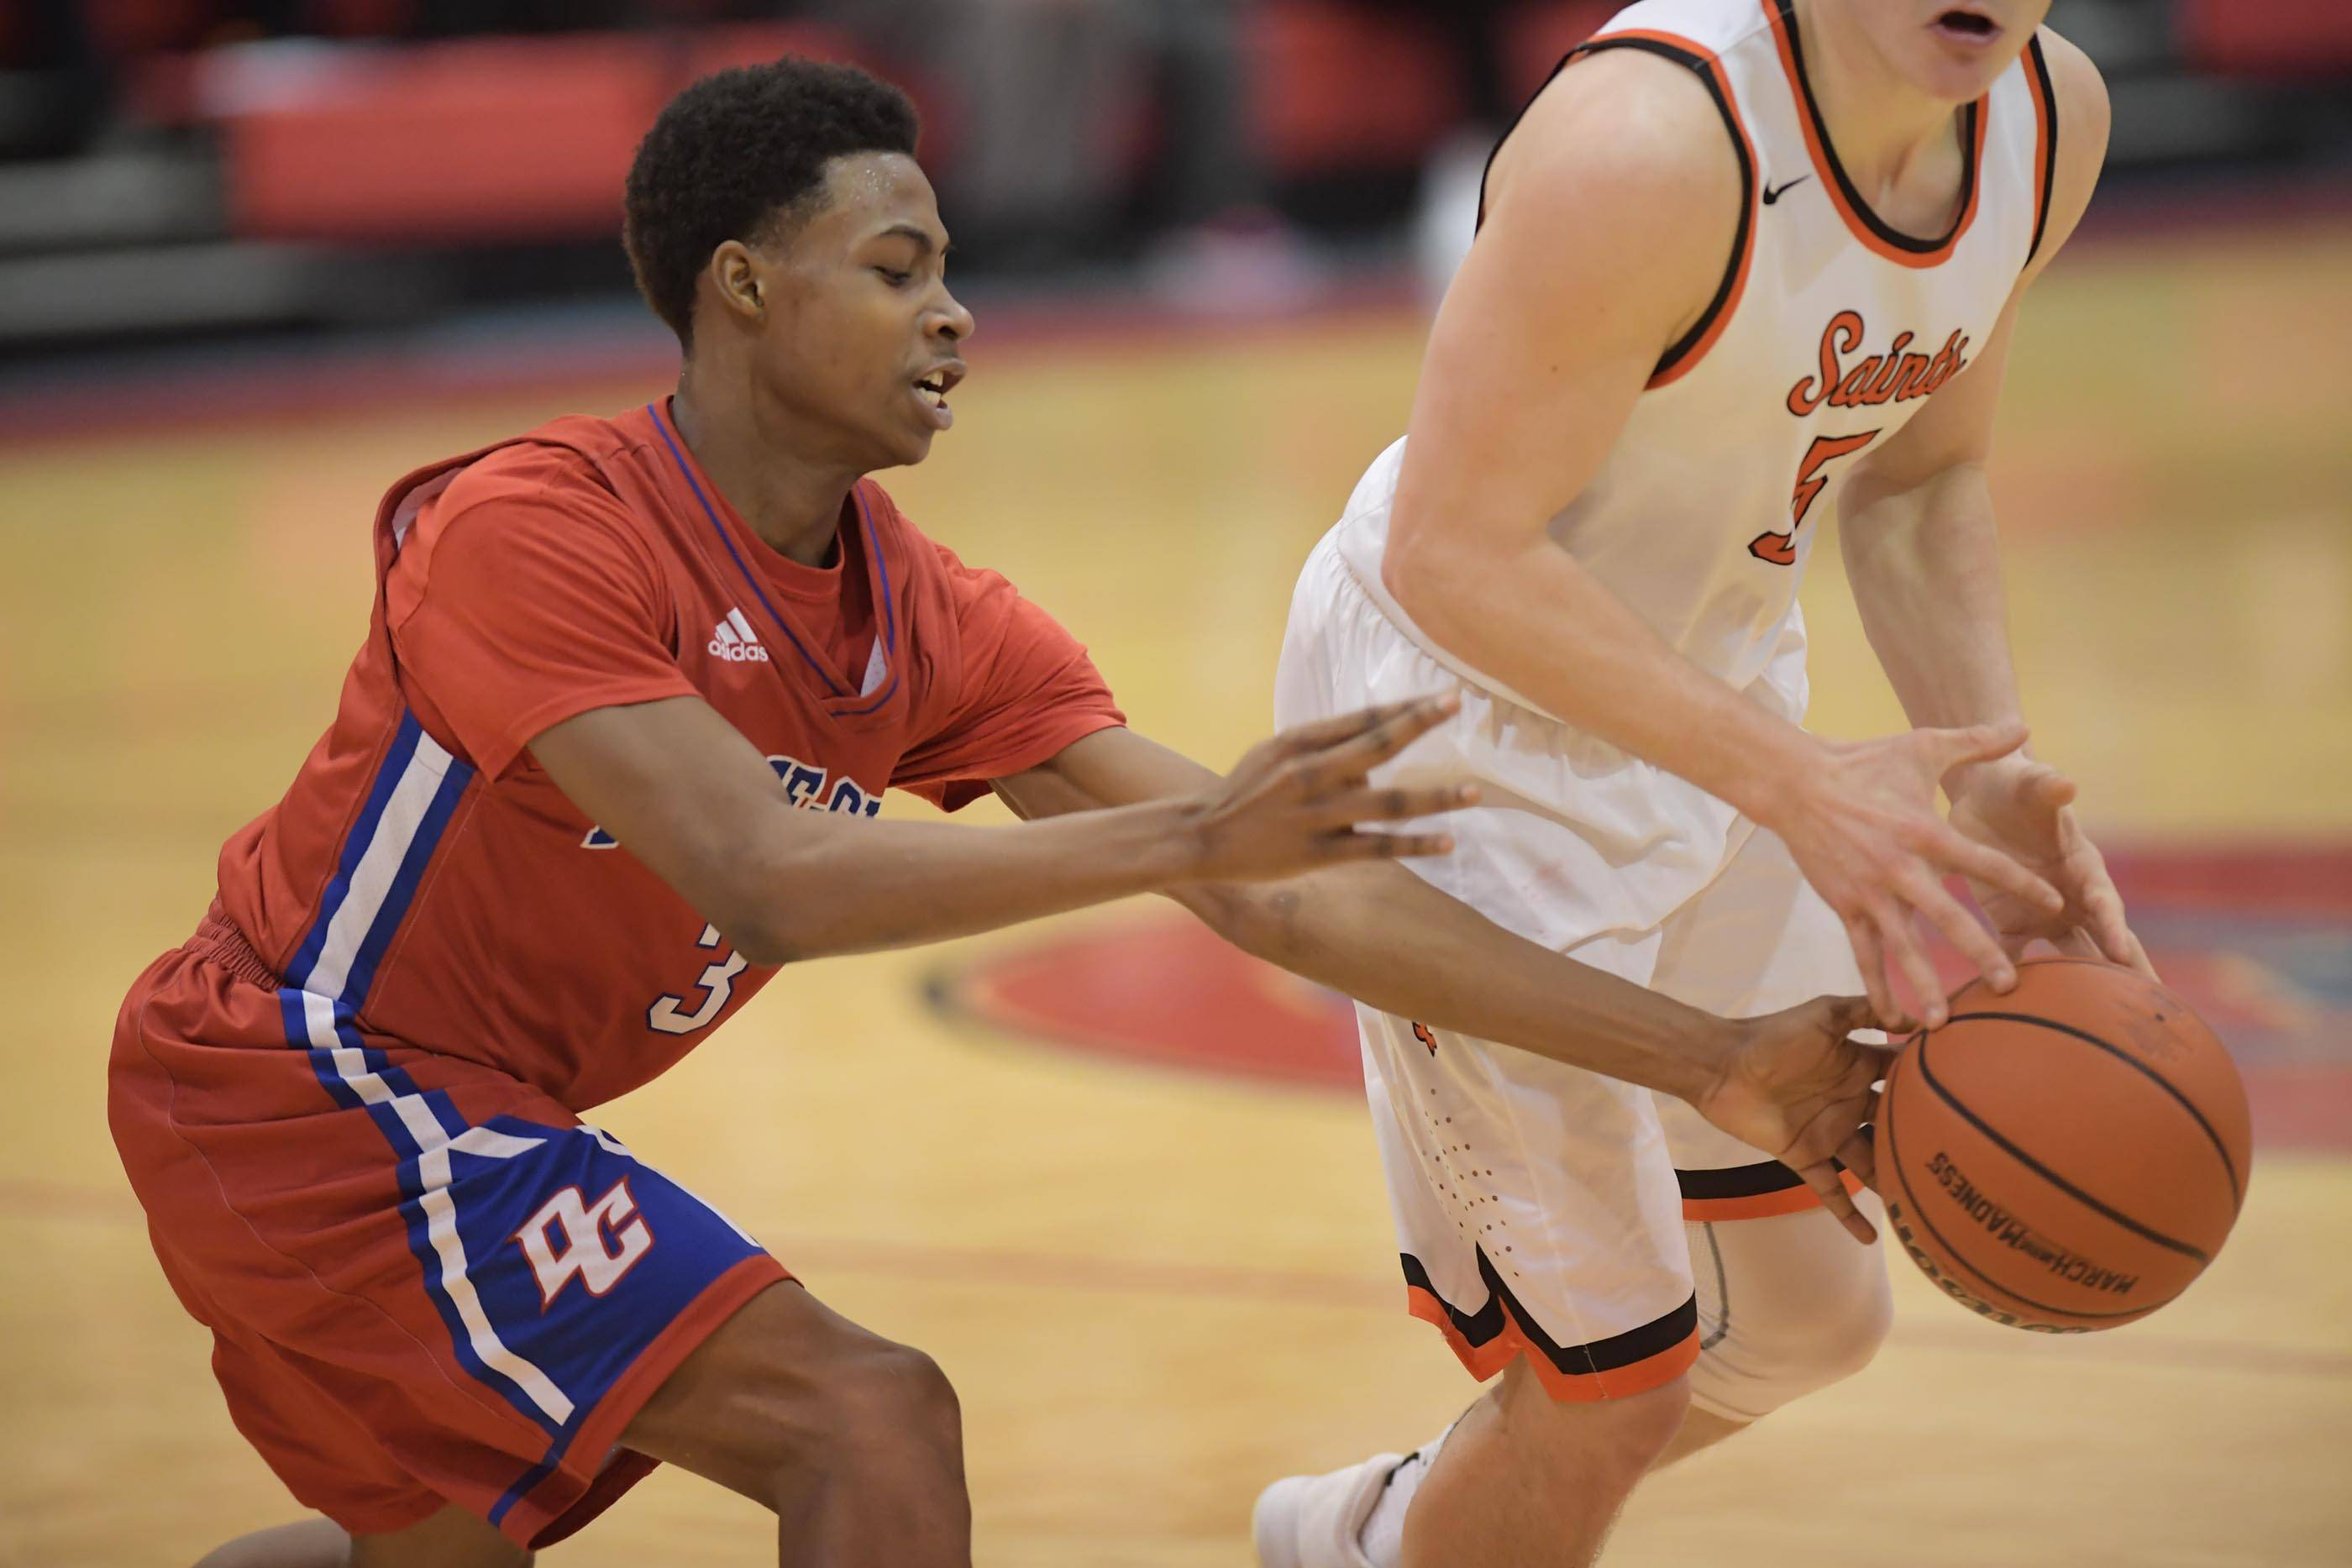 Dundee-Crown's Damarion Butler swats the ball from St. Charles East's Zachary Robinson in the Class 4A Dundee-Crown boys basketball semifinal regional game Wednesday.